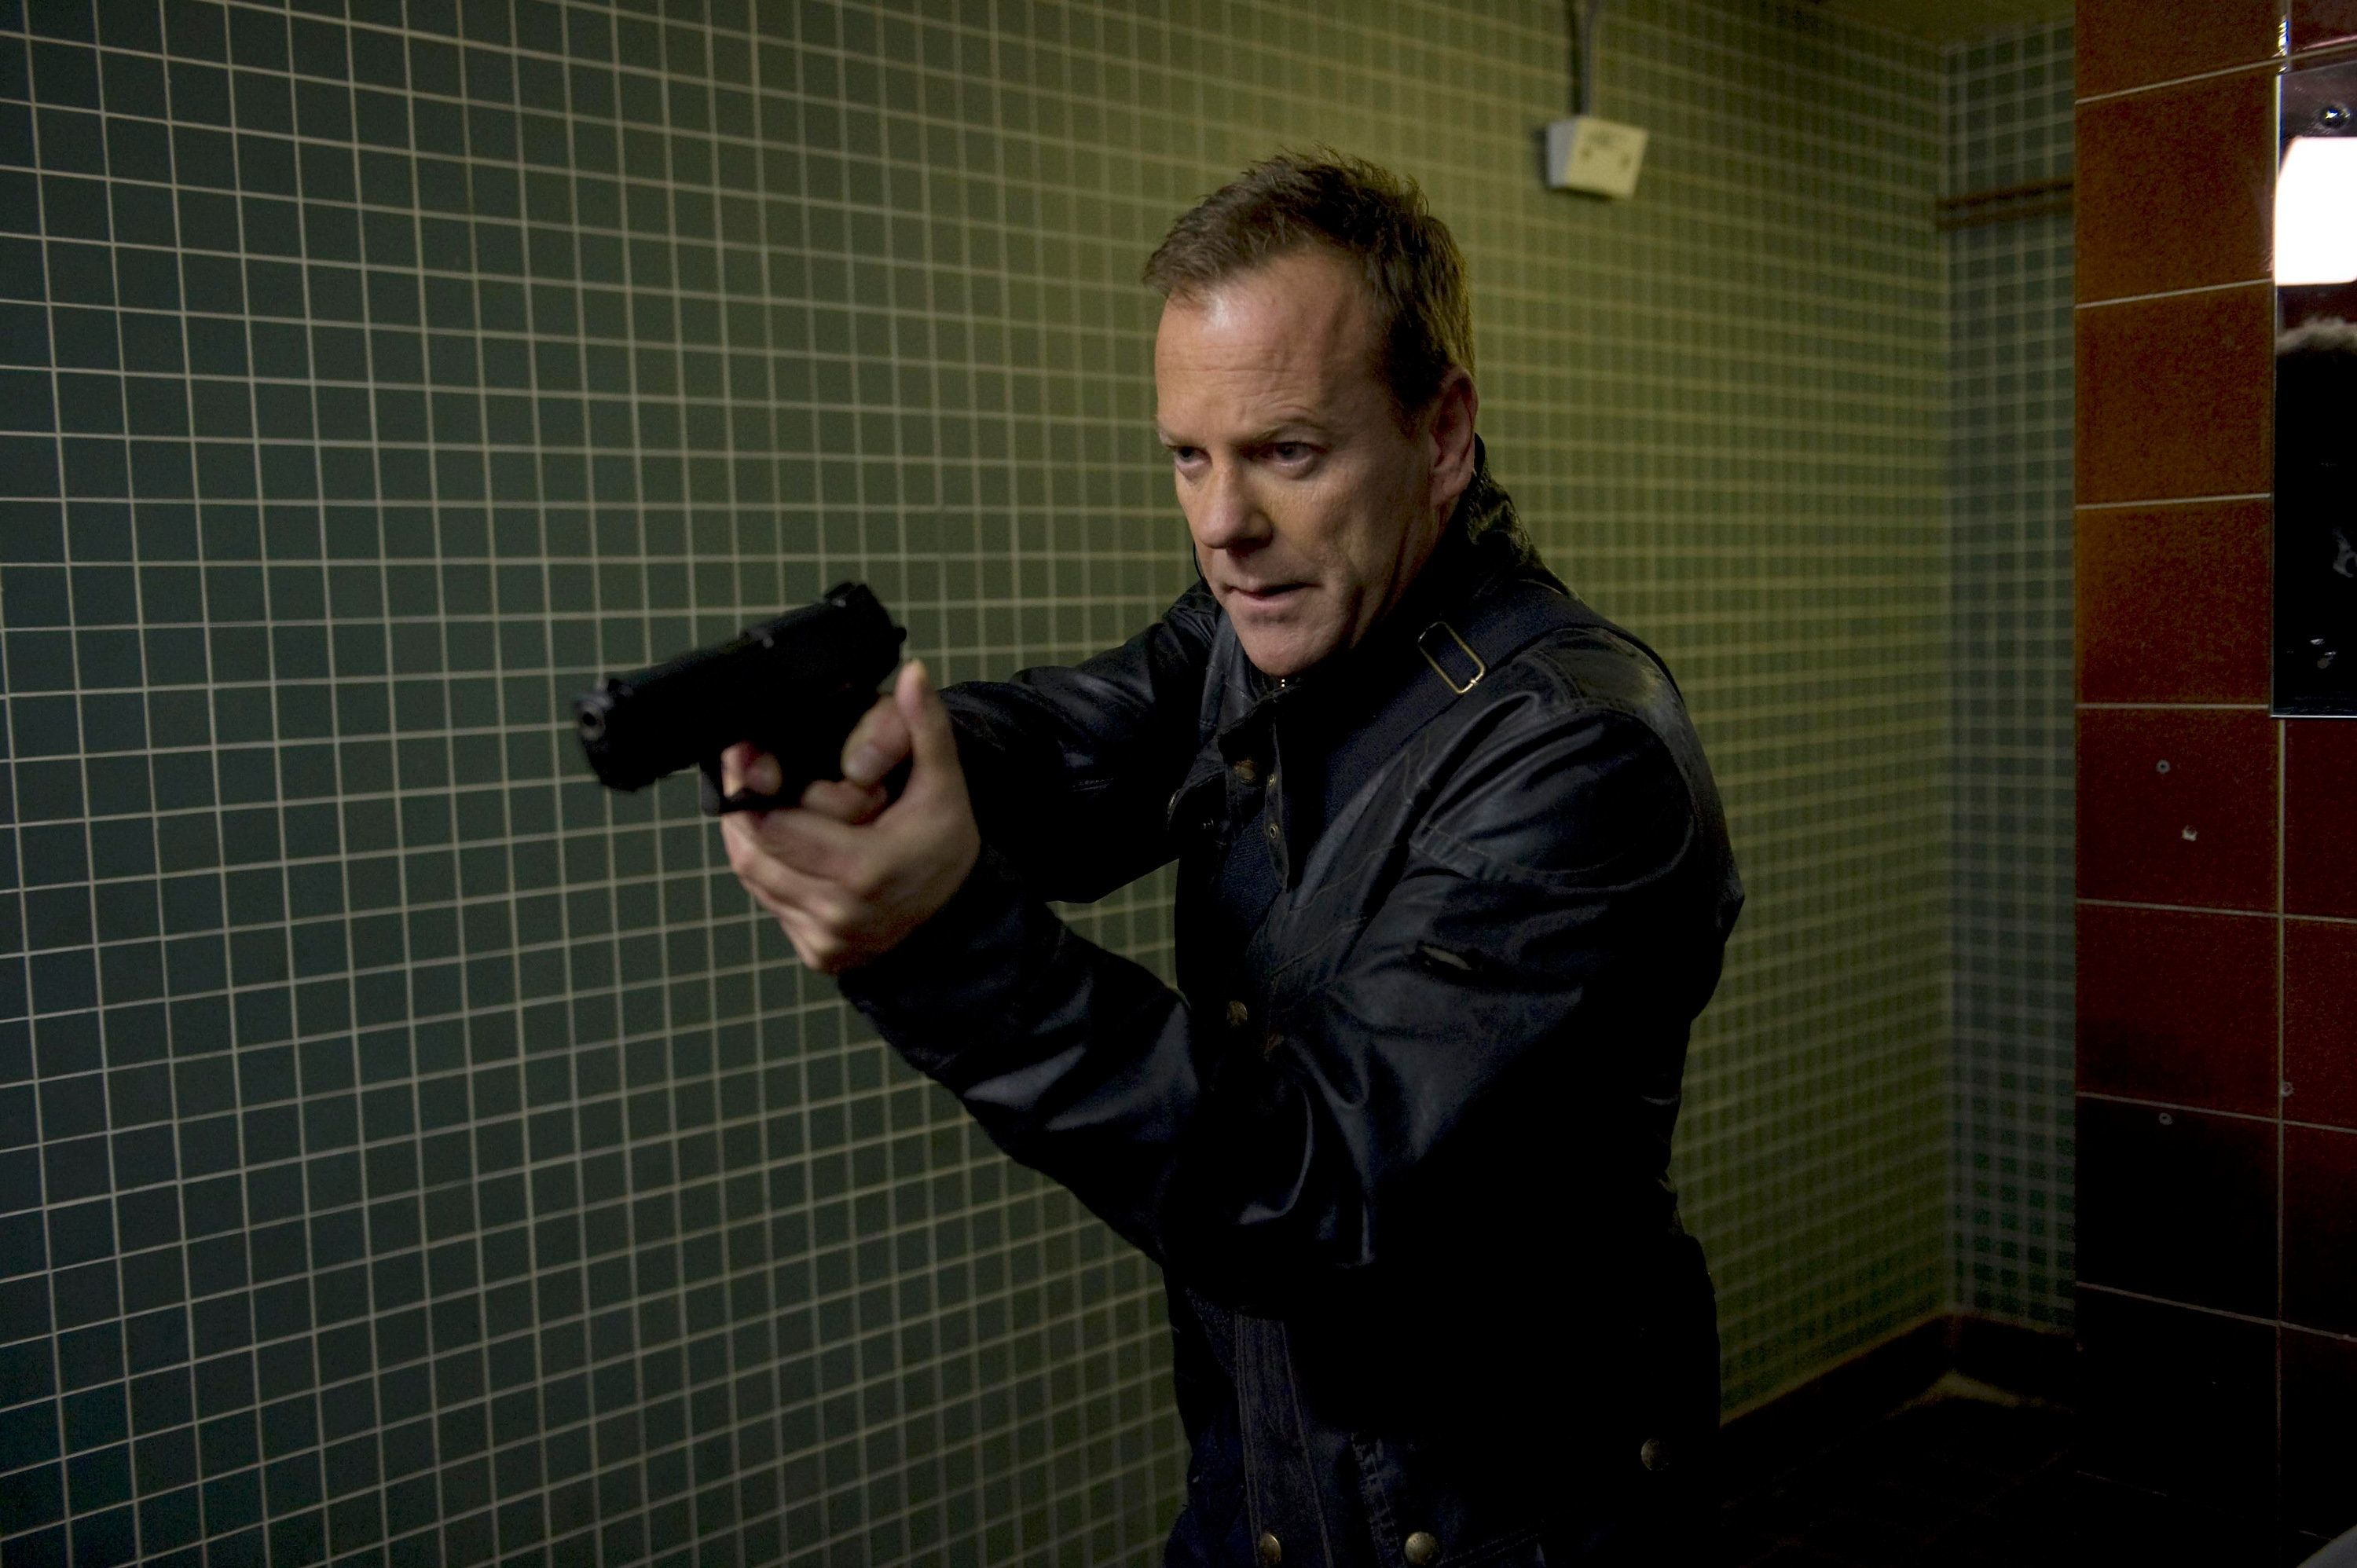 24: LIVE ANOTHER DAY: Kiefer Sutherland in the special, two-hour premiere episode of 24: LIVE ANOTHER DAY on Monday, May 5, 2014 (8:00-10:00 PM ET/PT) on FOX. (Photo by FOX via Getty Images)